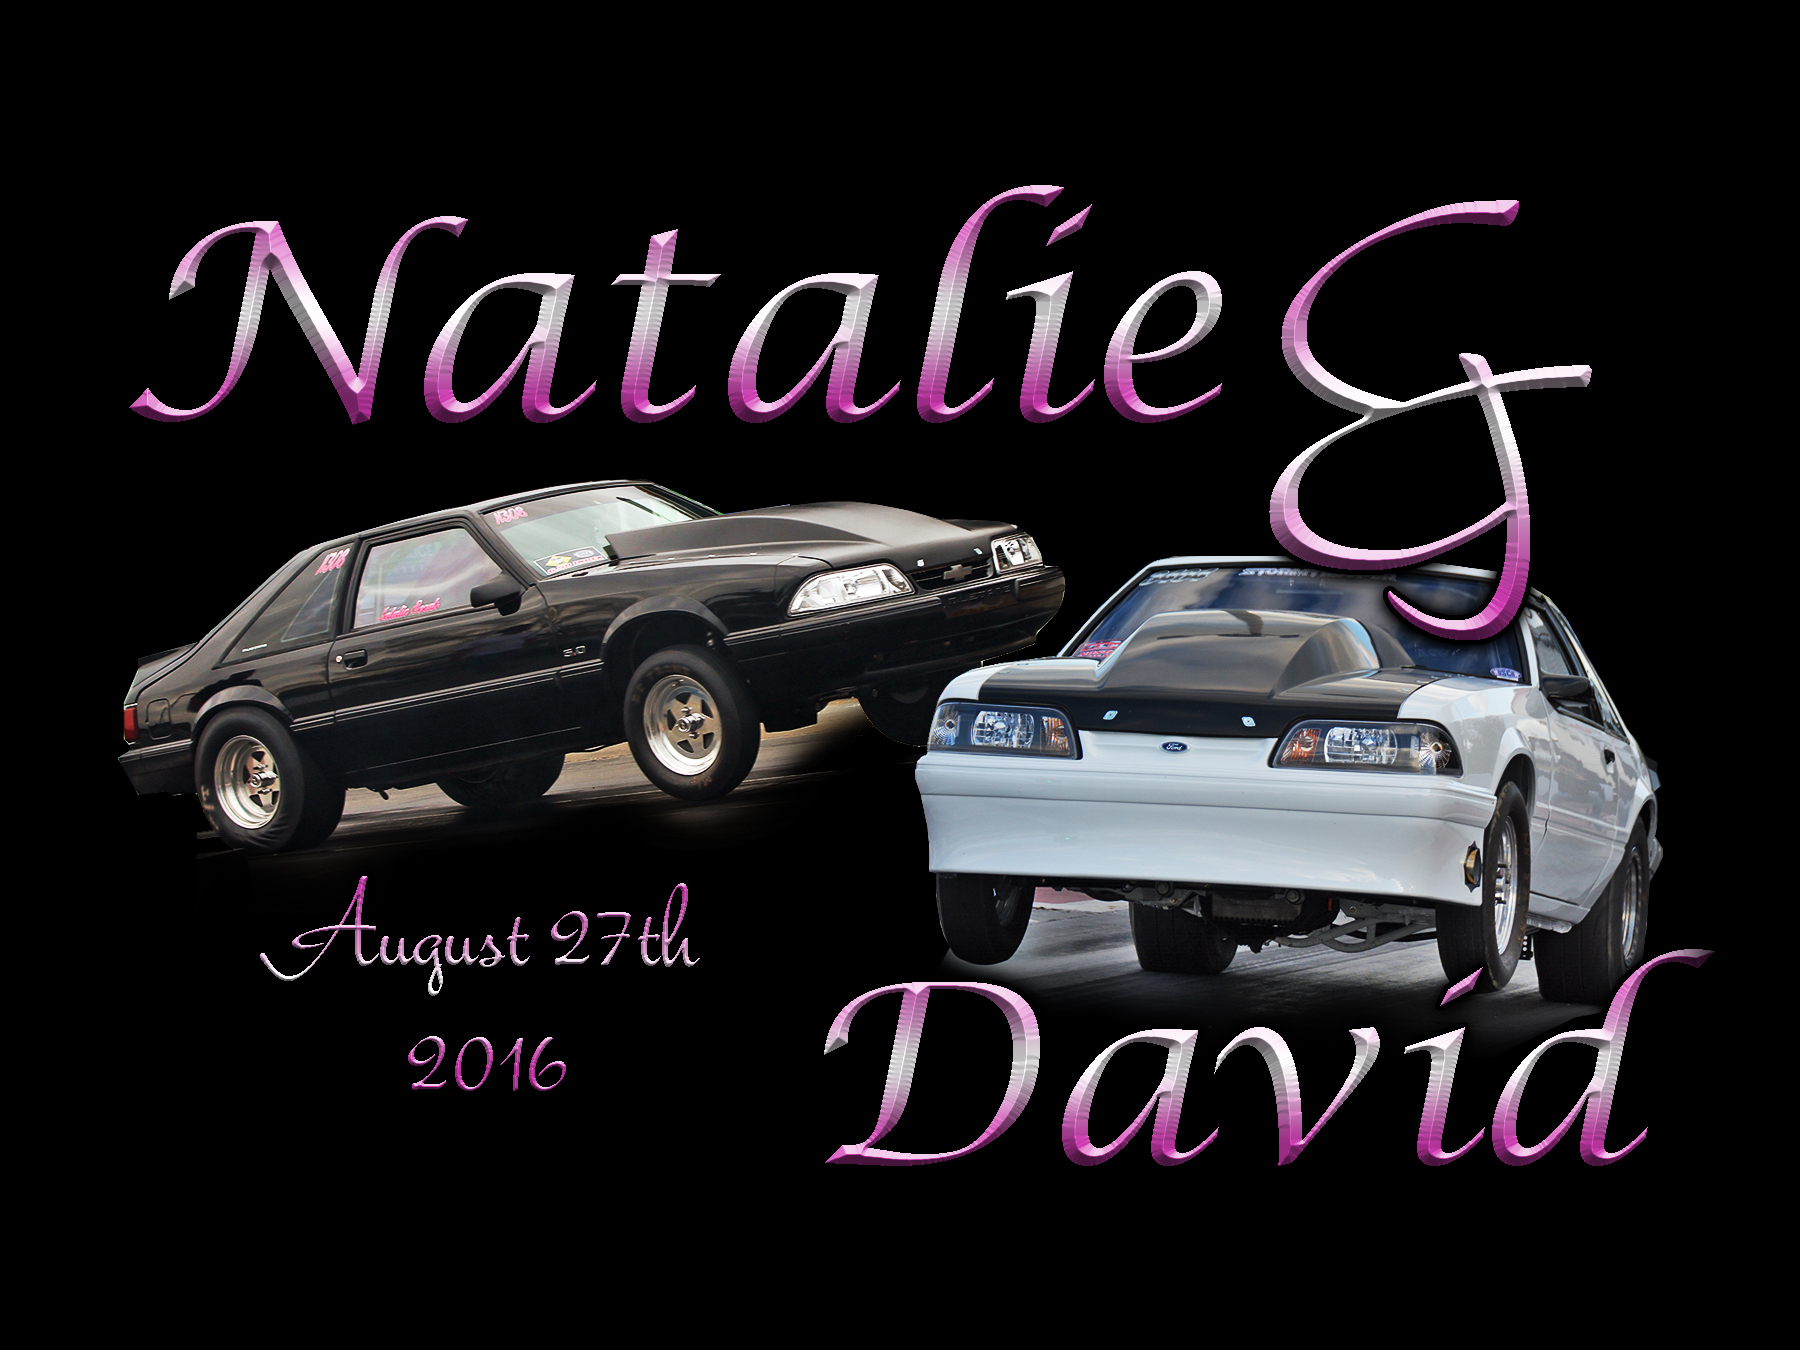 natalie and david 3 monogram.jpg